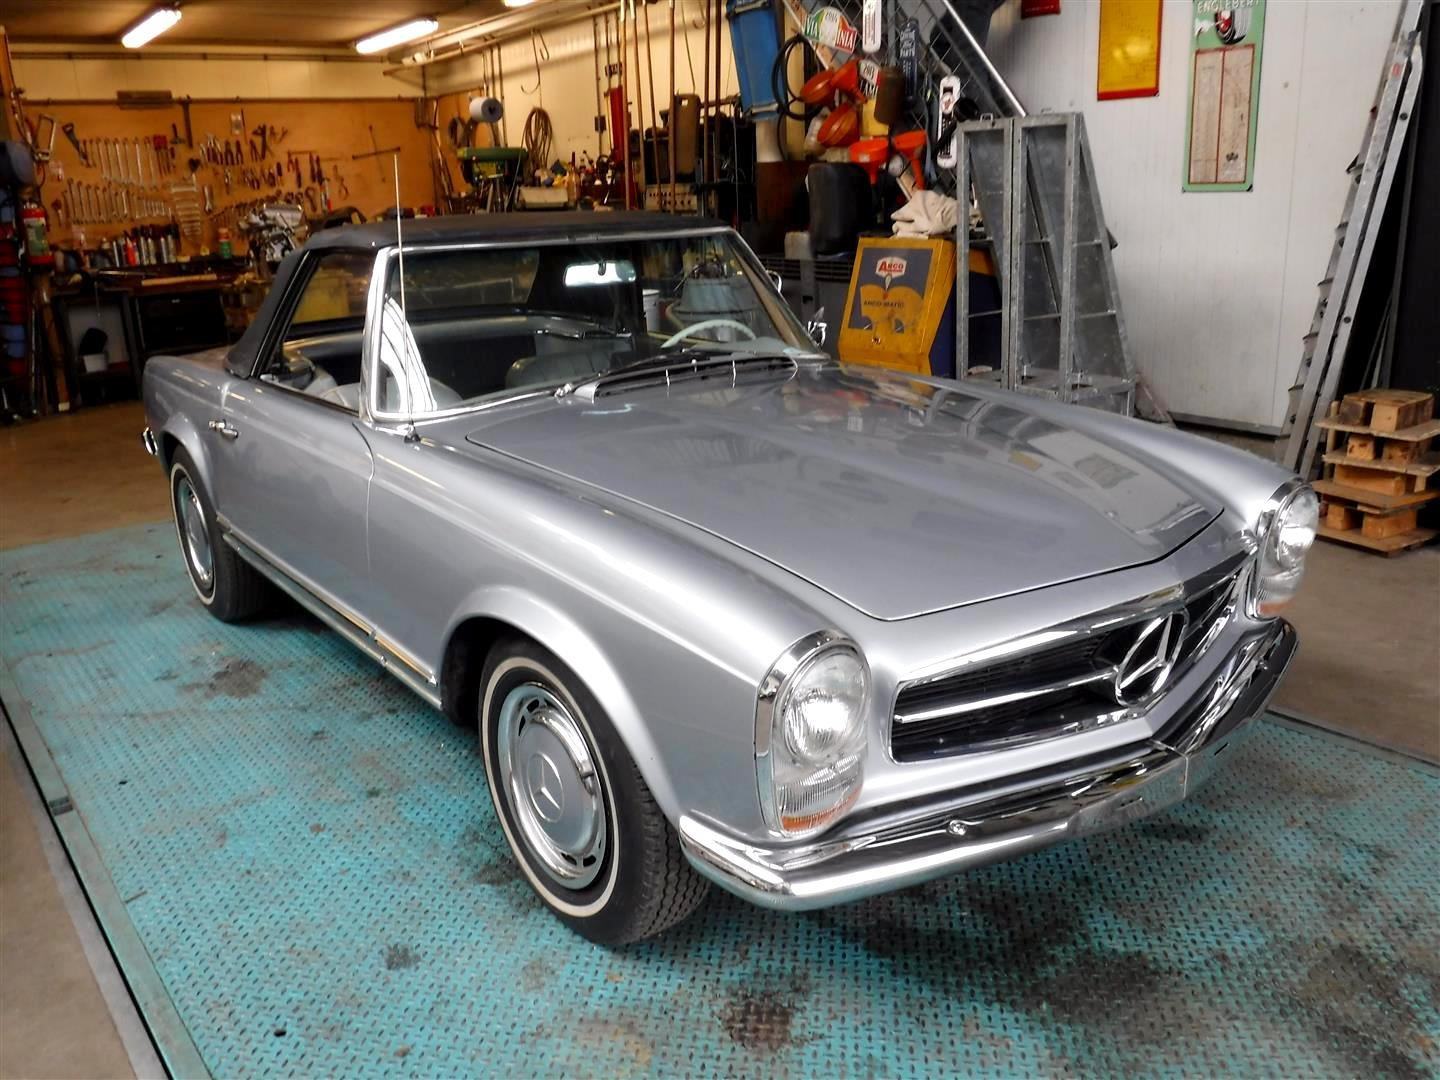 1965 Mercedes Benz 230SL silver '65 For Sale (picture 1 of 6)